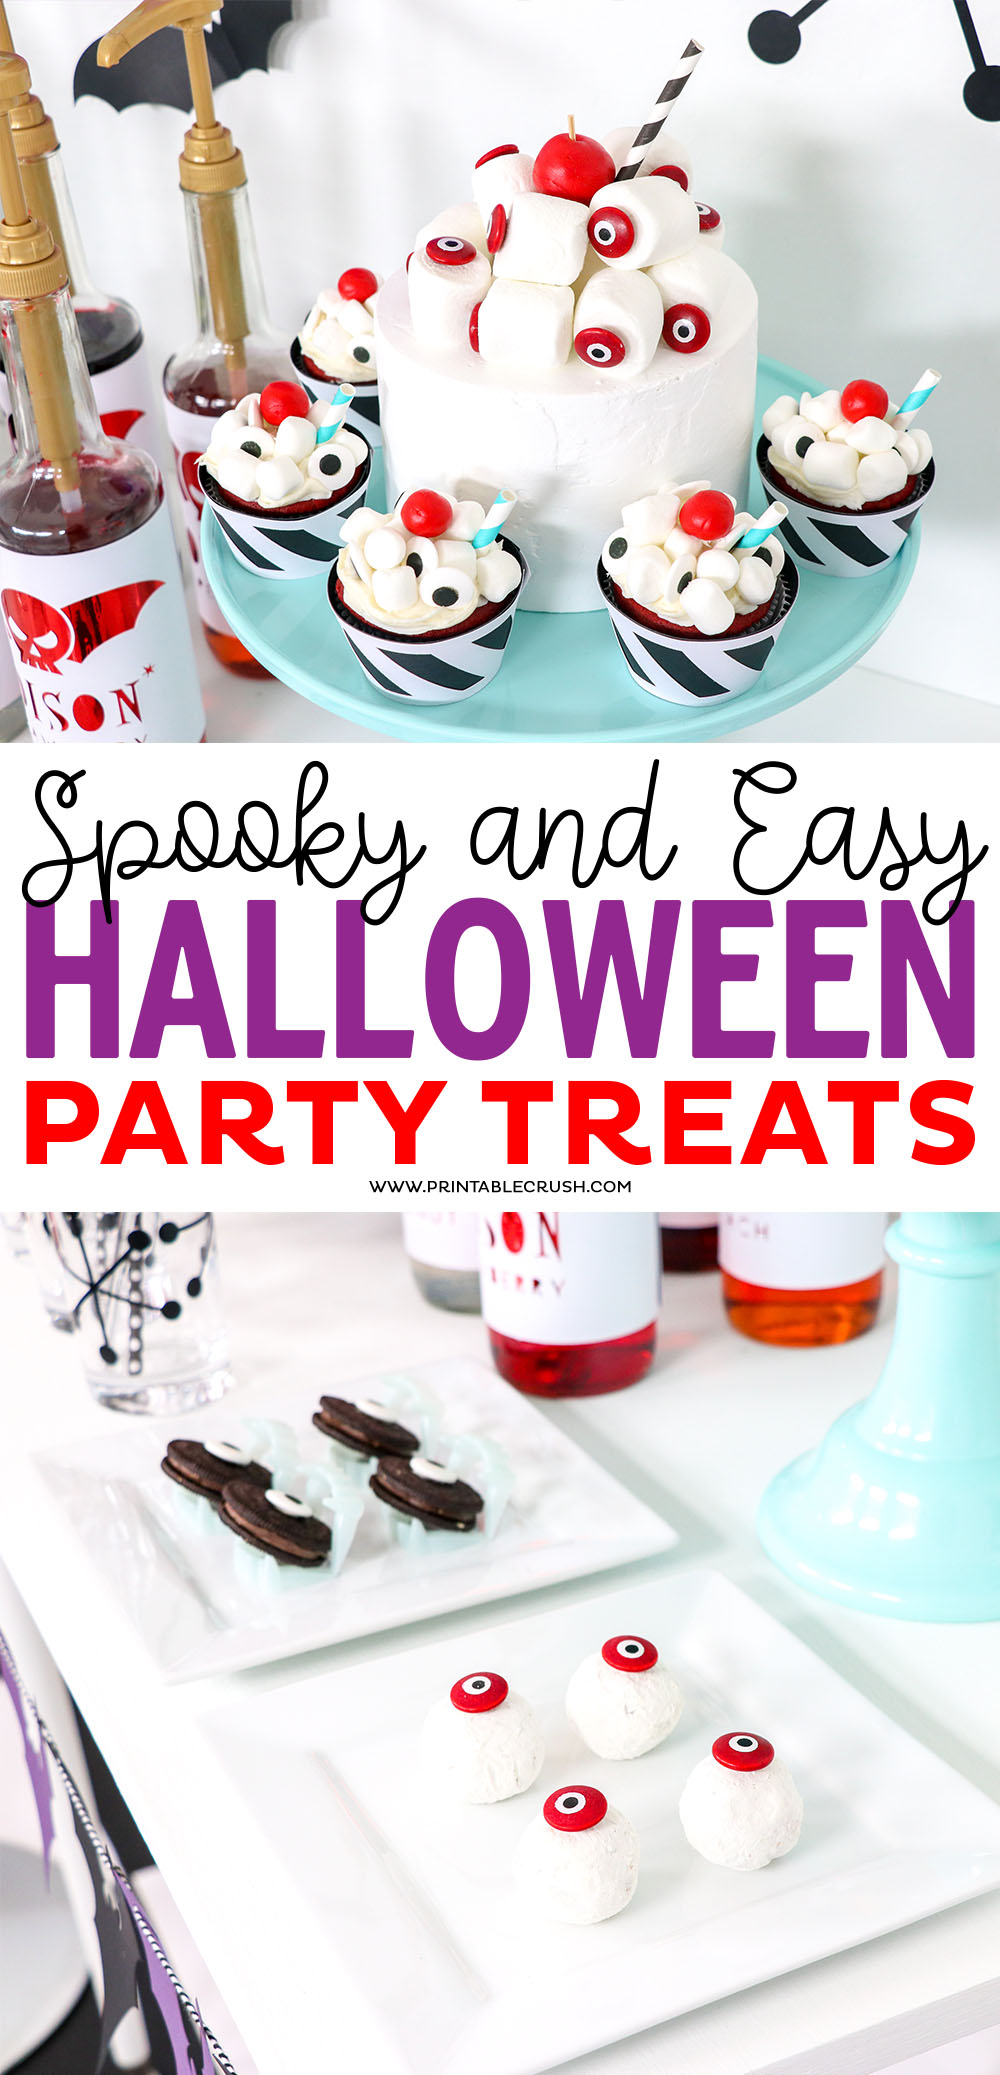 These are the EASIEST Halloween party Treat ideas you will ever try! Little to no cooking time and will definitely satisfy that sweet tooth for your Hallween parties.